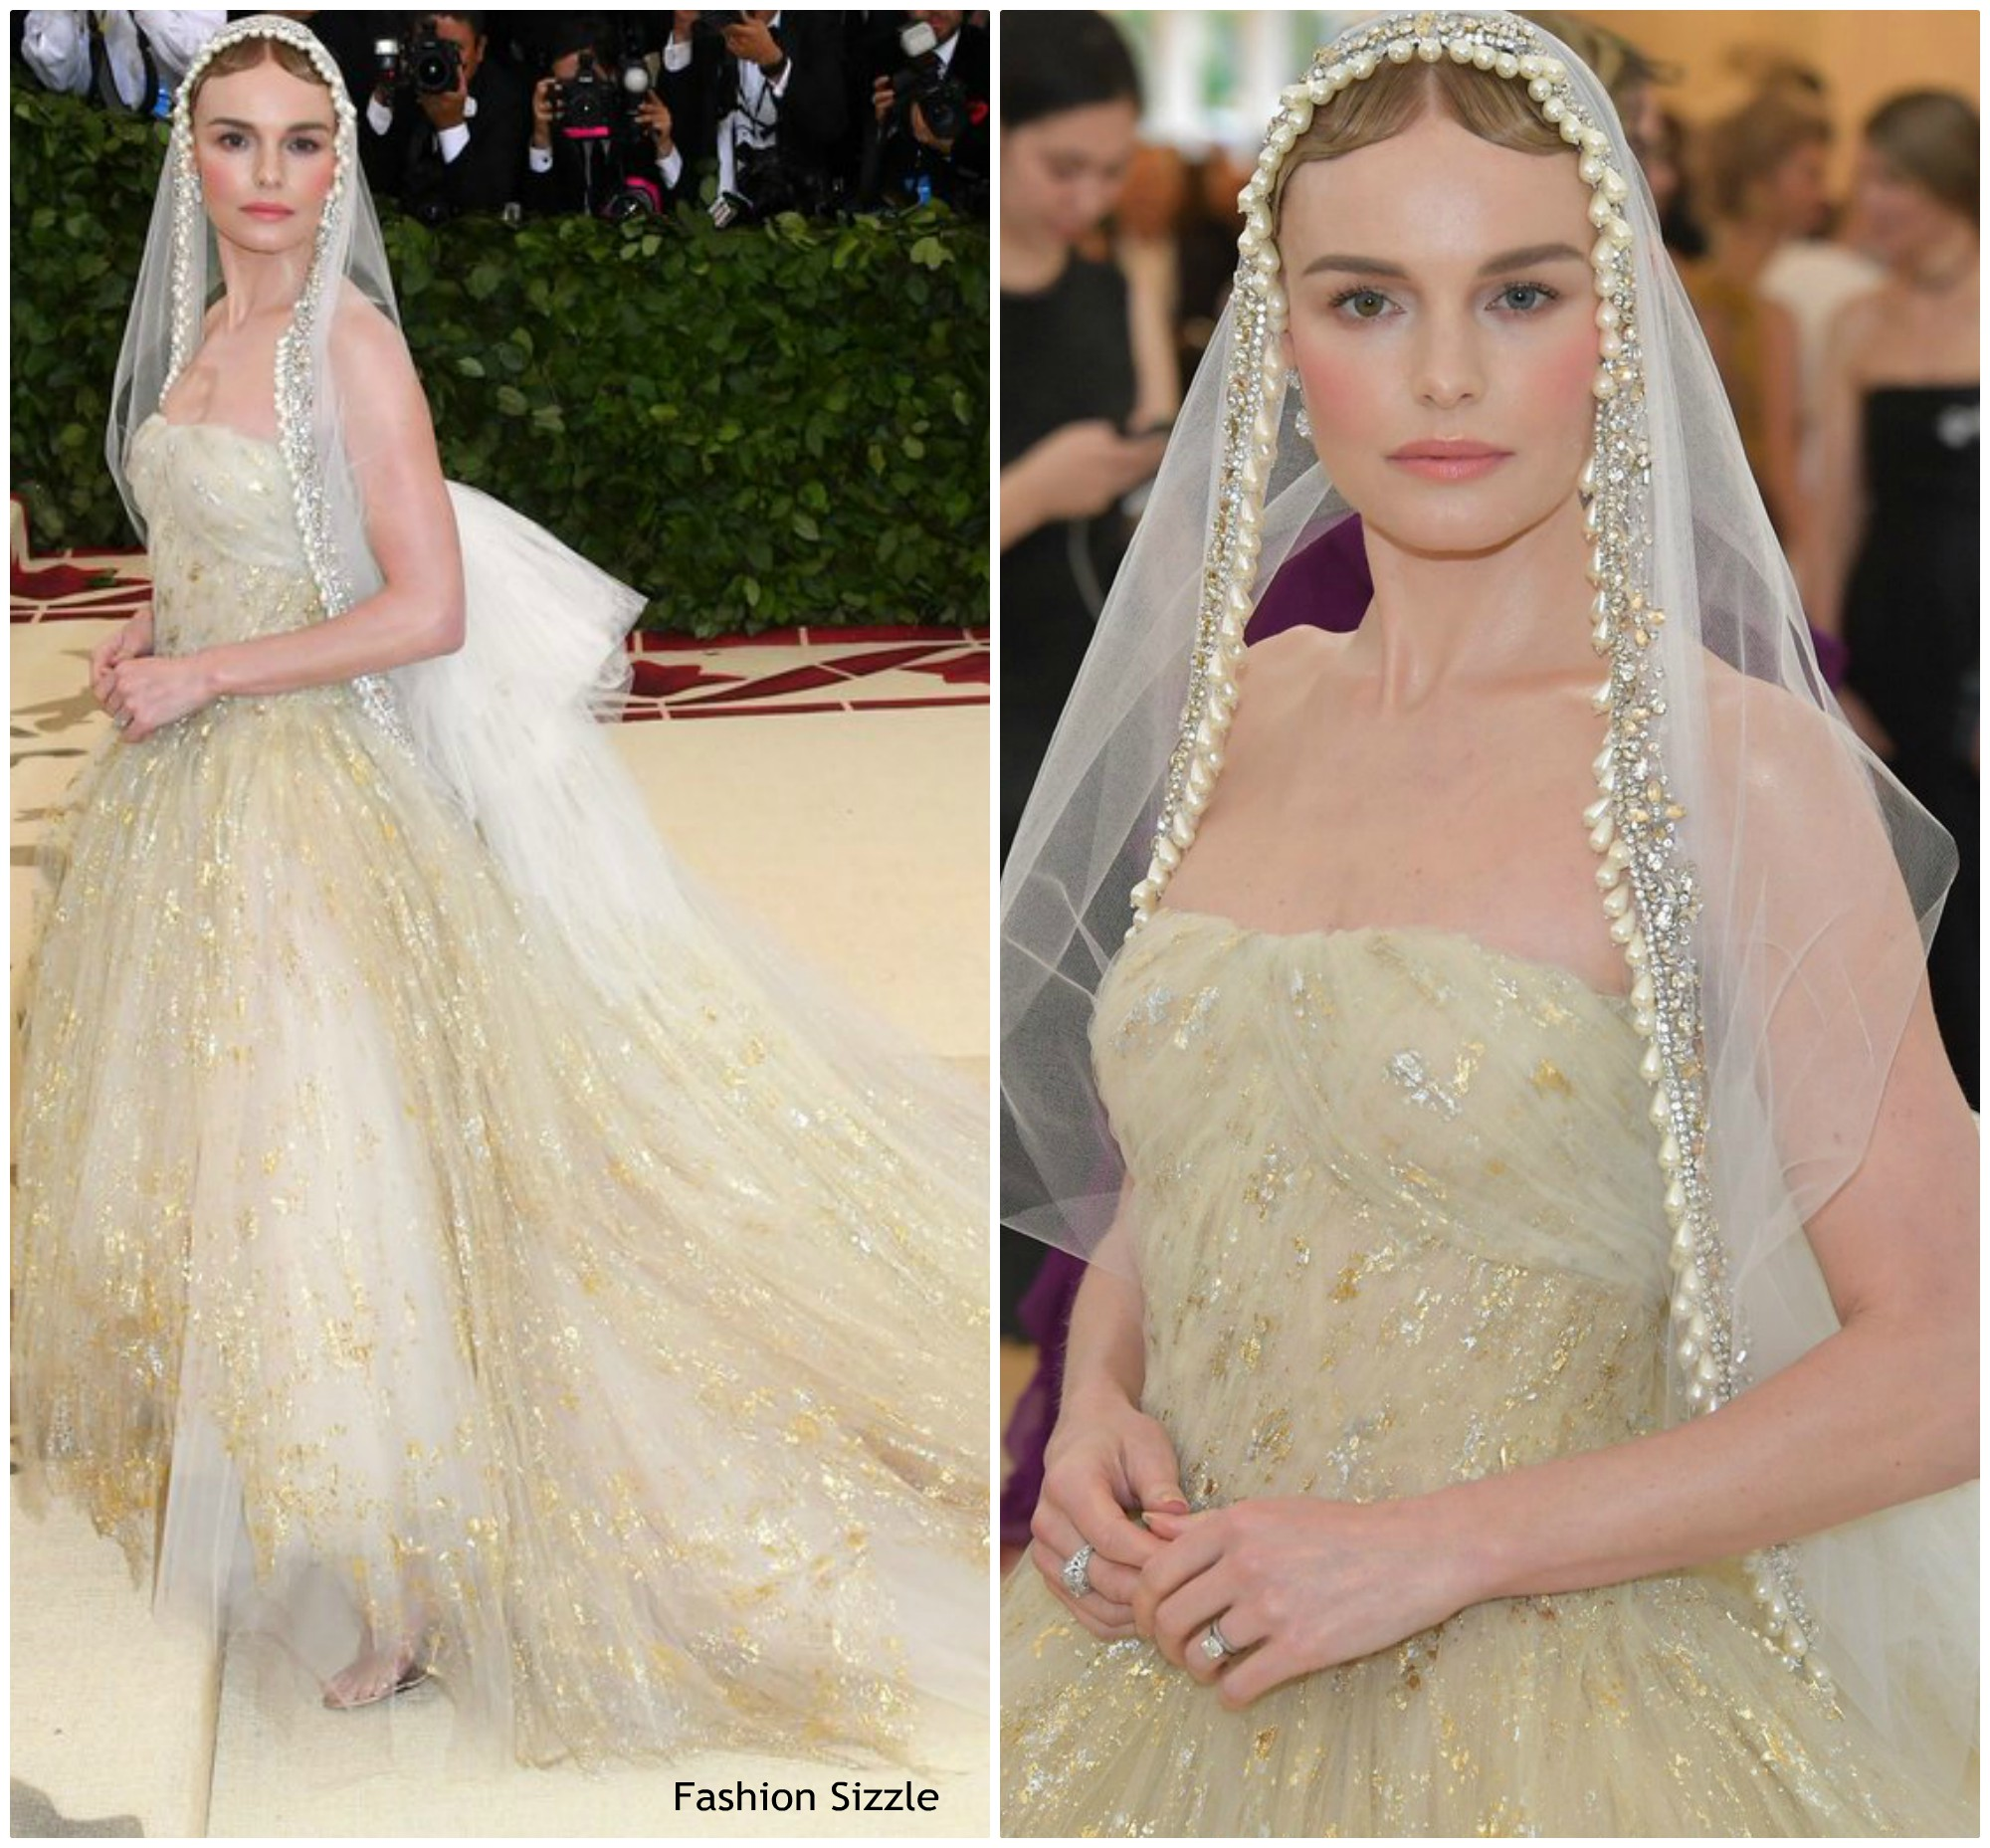 kate-bosworth-in-oscar-de-la-renta-2018-met-gala